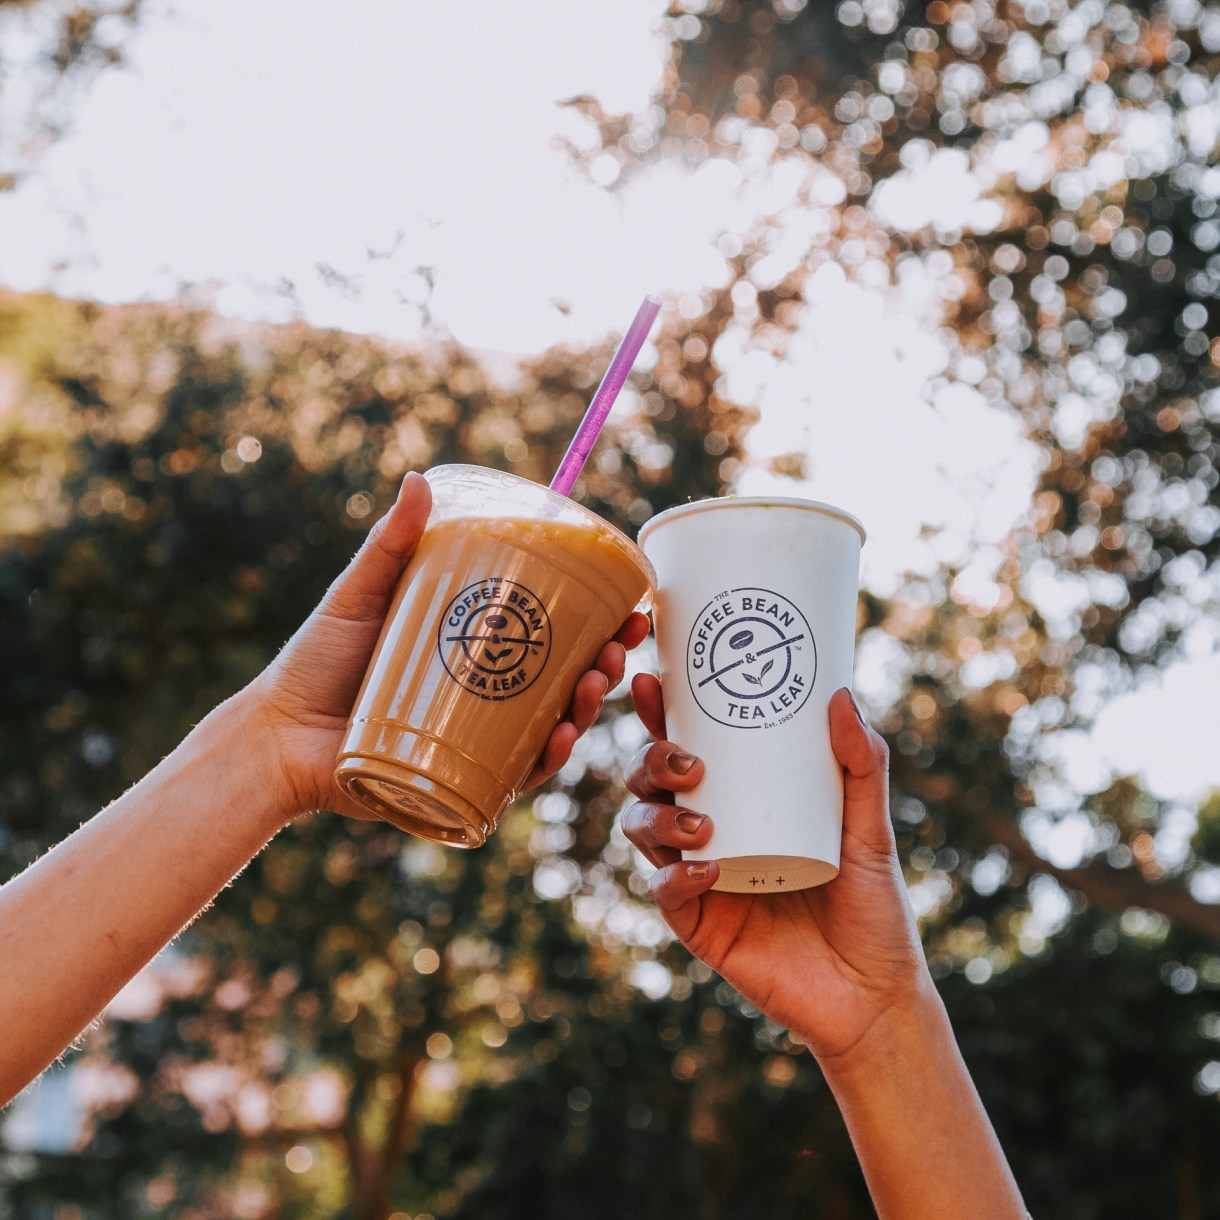 coffee bean & tea leaf 1-for-1